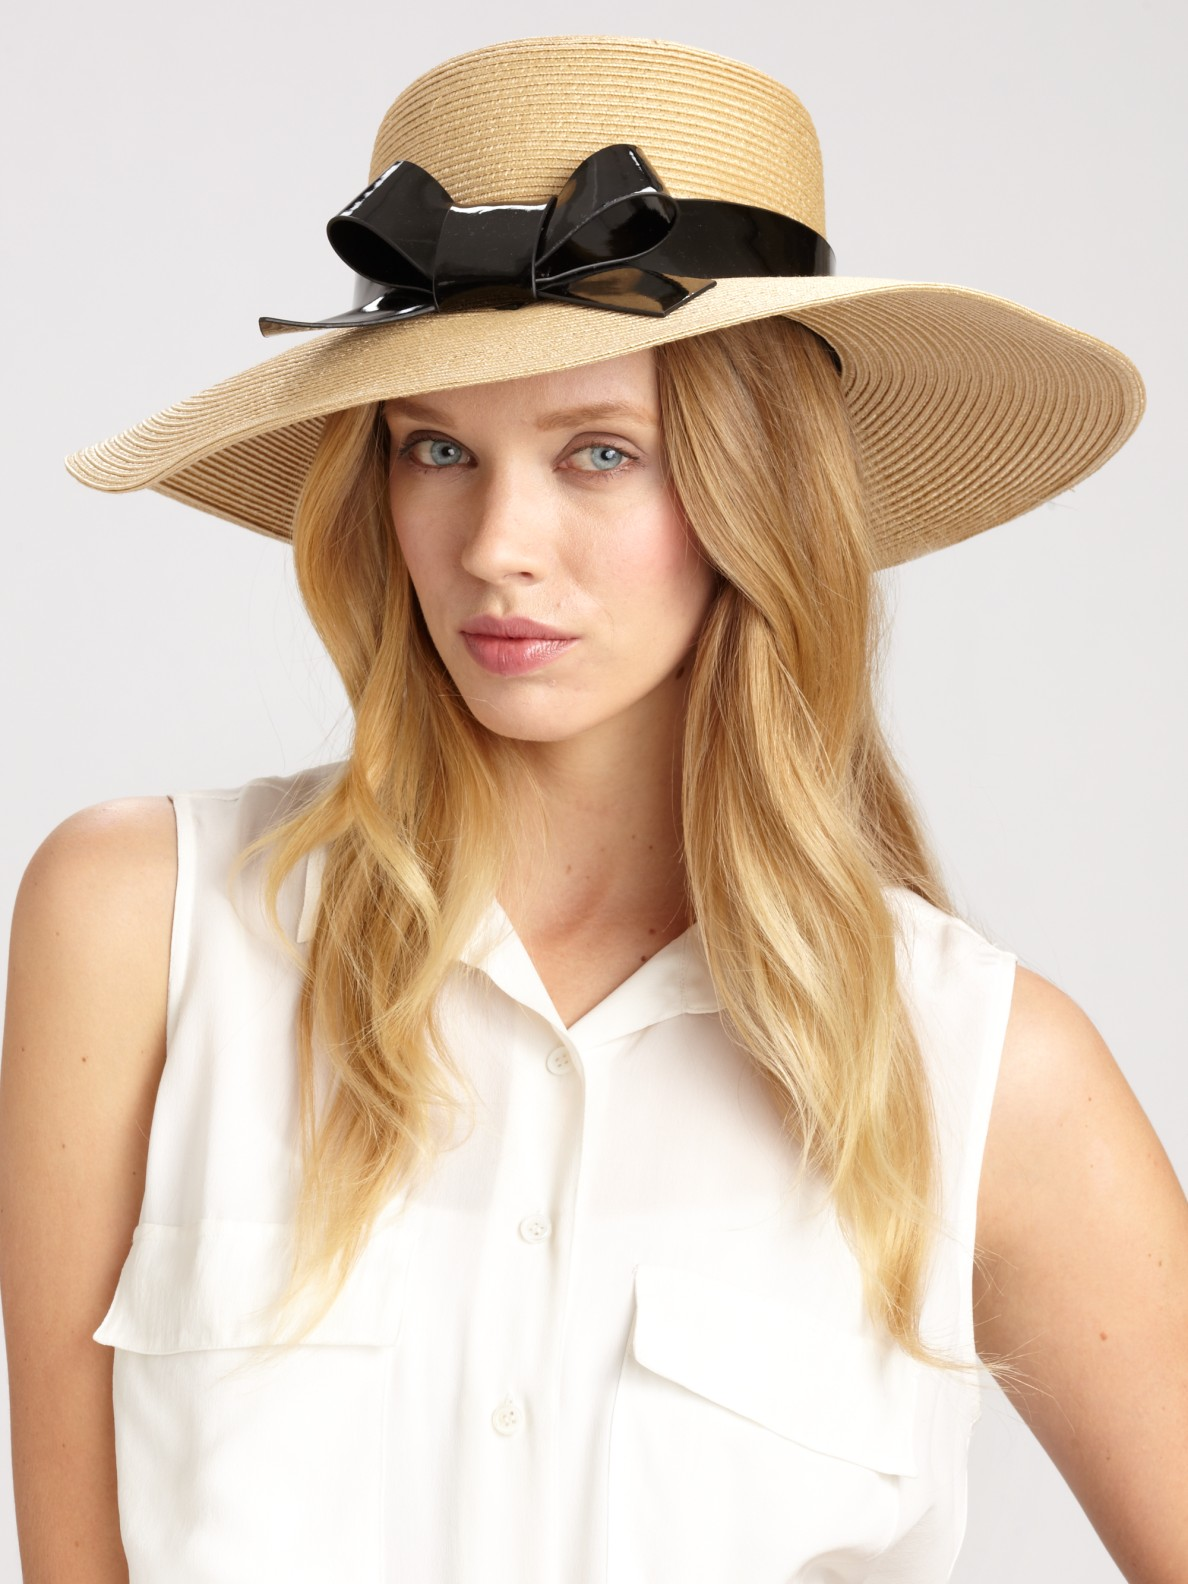 Lyst - Kate Spade Patent Bow Sun Hat in Natural 884a9a7edae